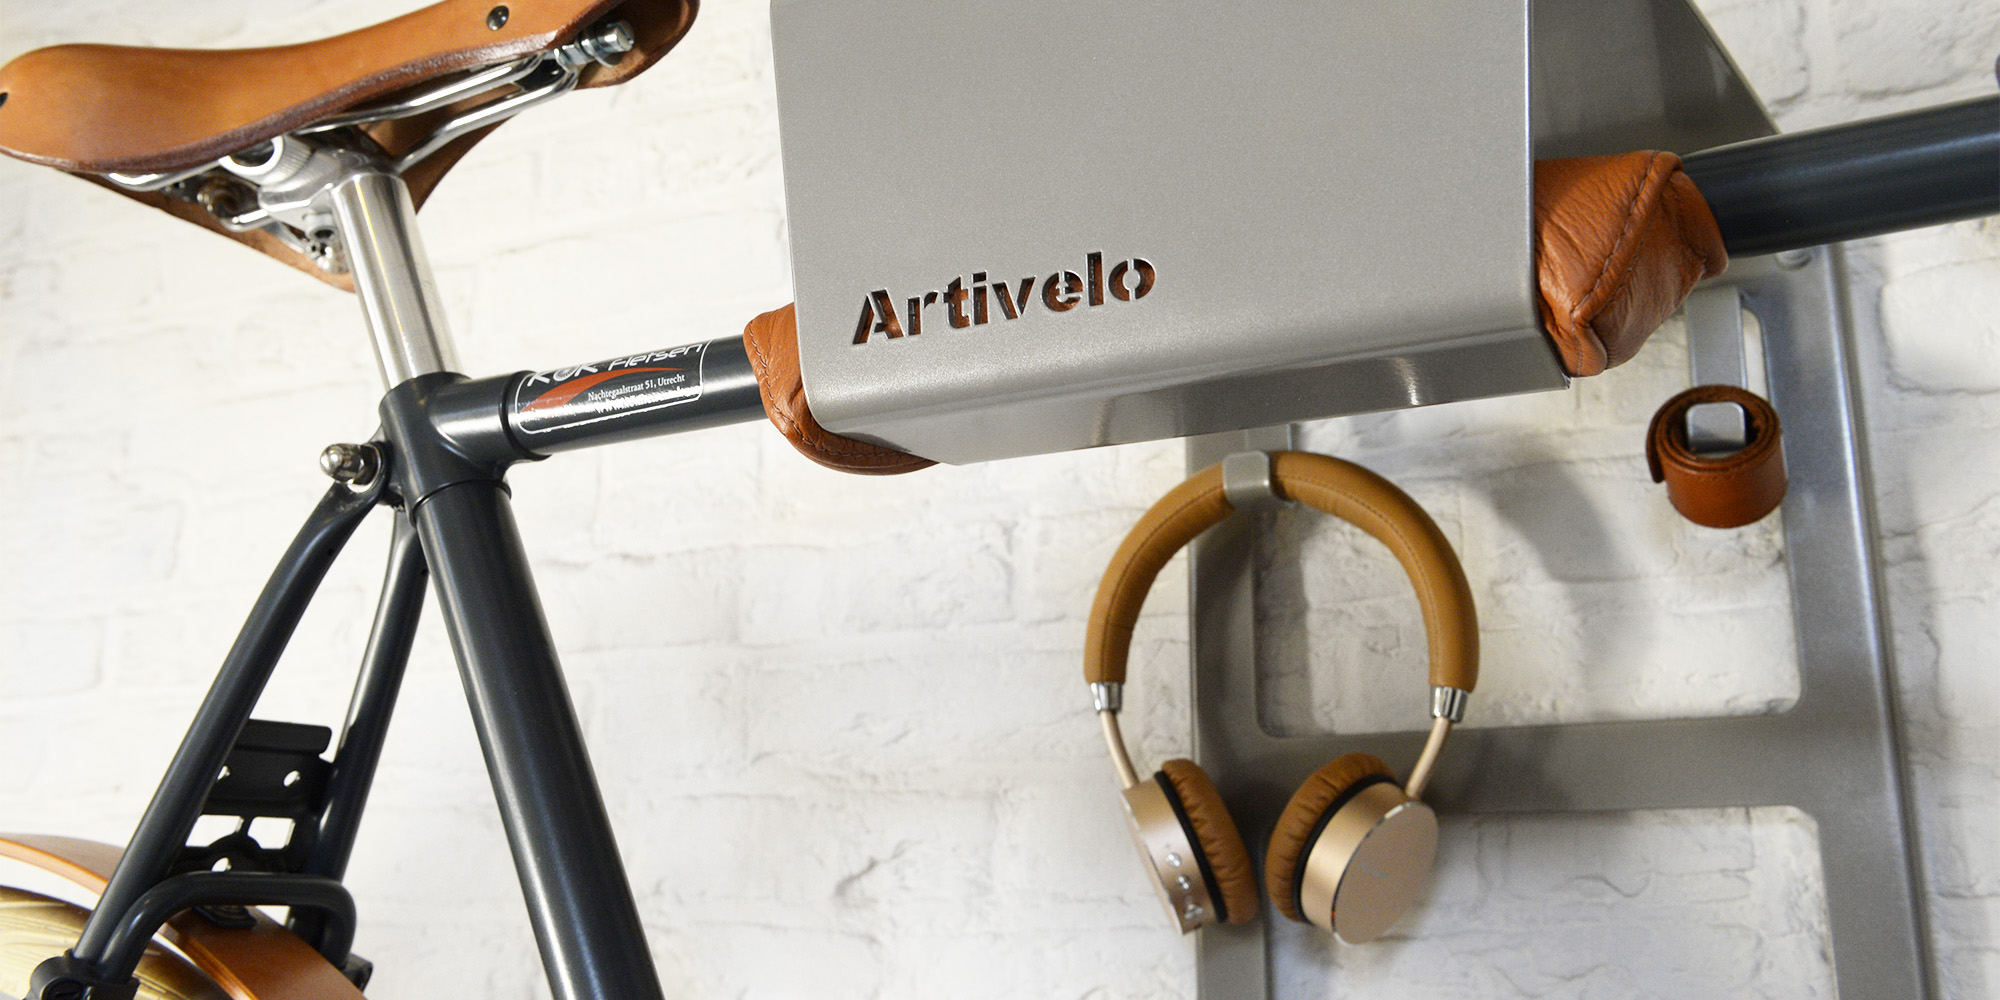 How To Hang Bike On Wall the new artivelo bikedock urban - artivelo - english